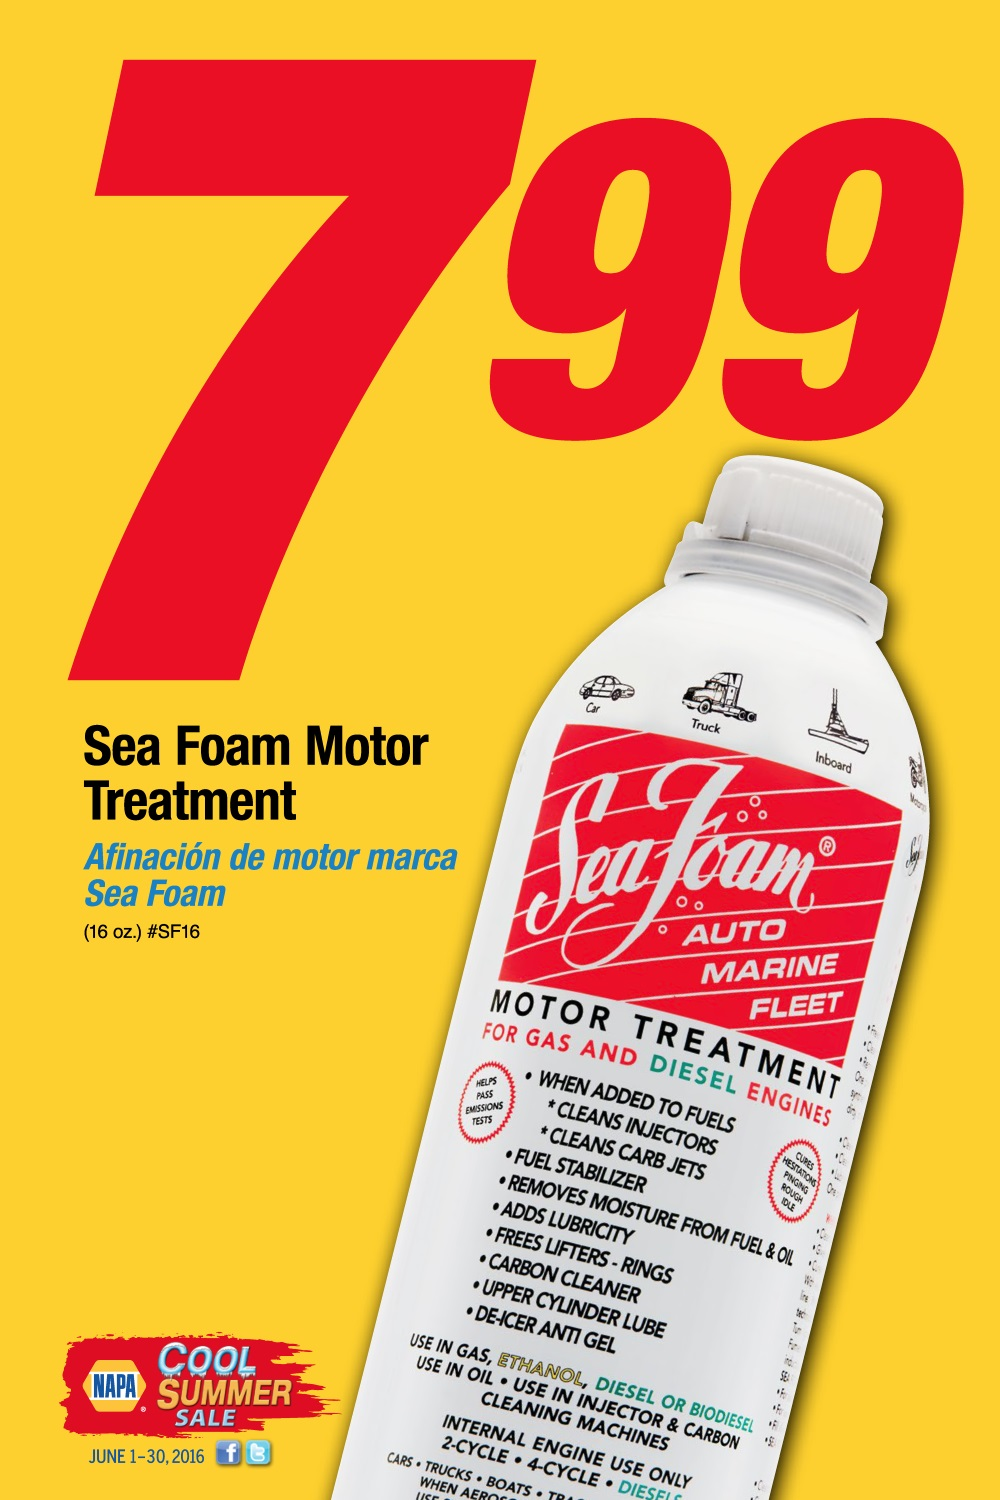 Wilsons Napa Auto Parts - Sea Foam